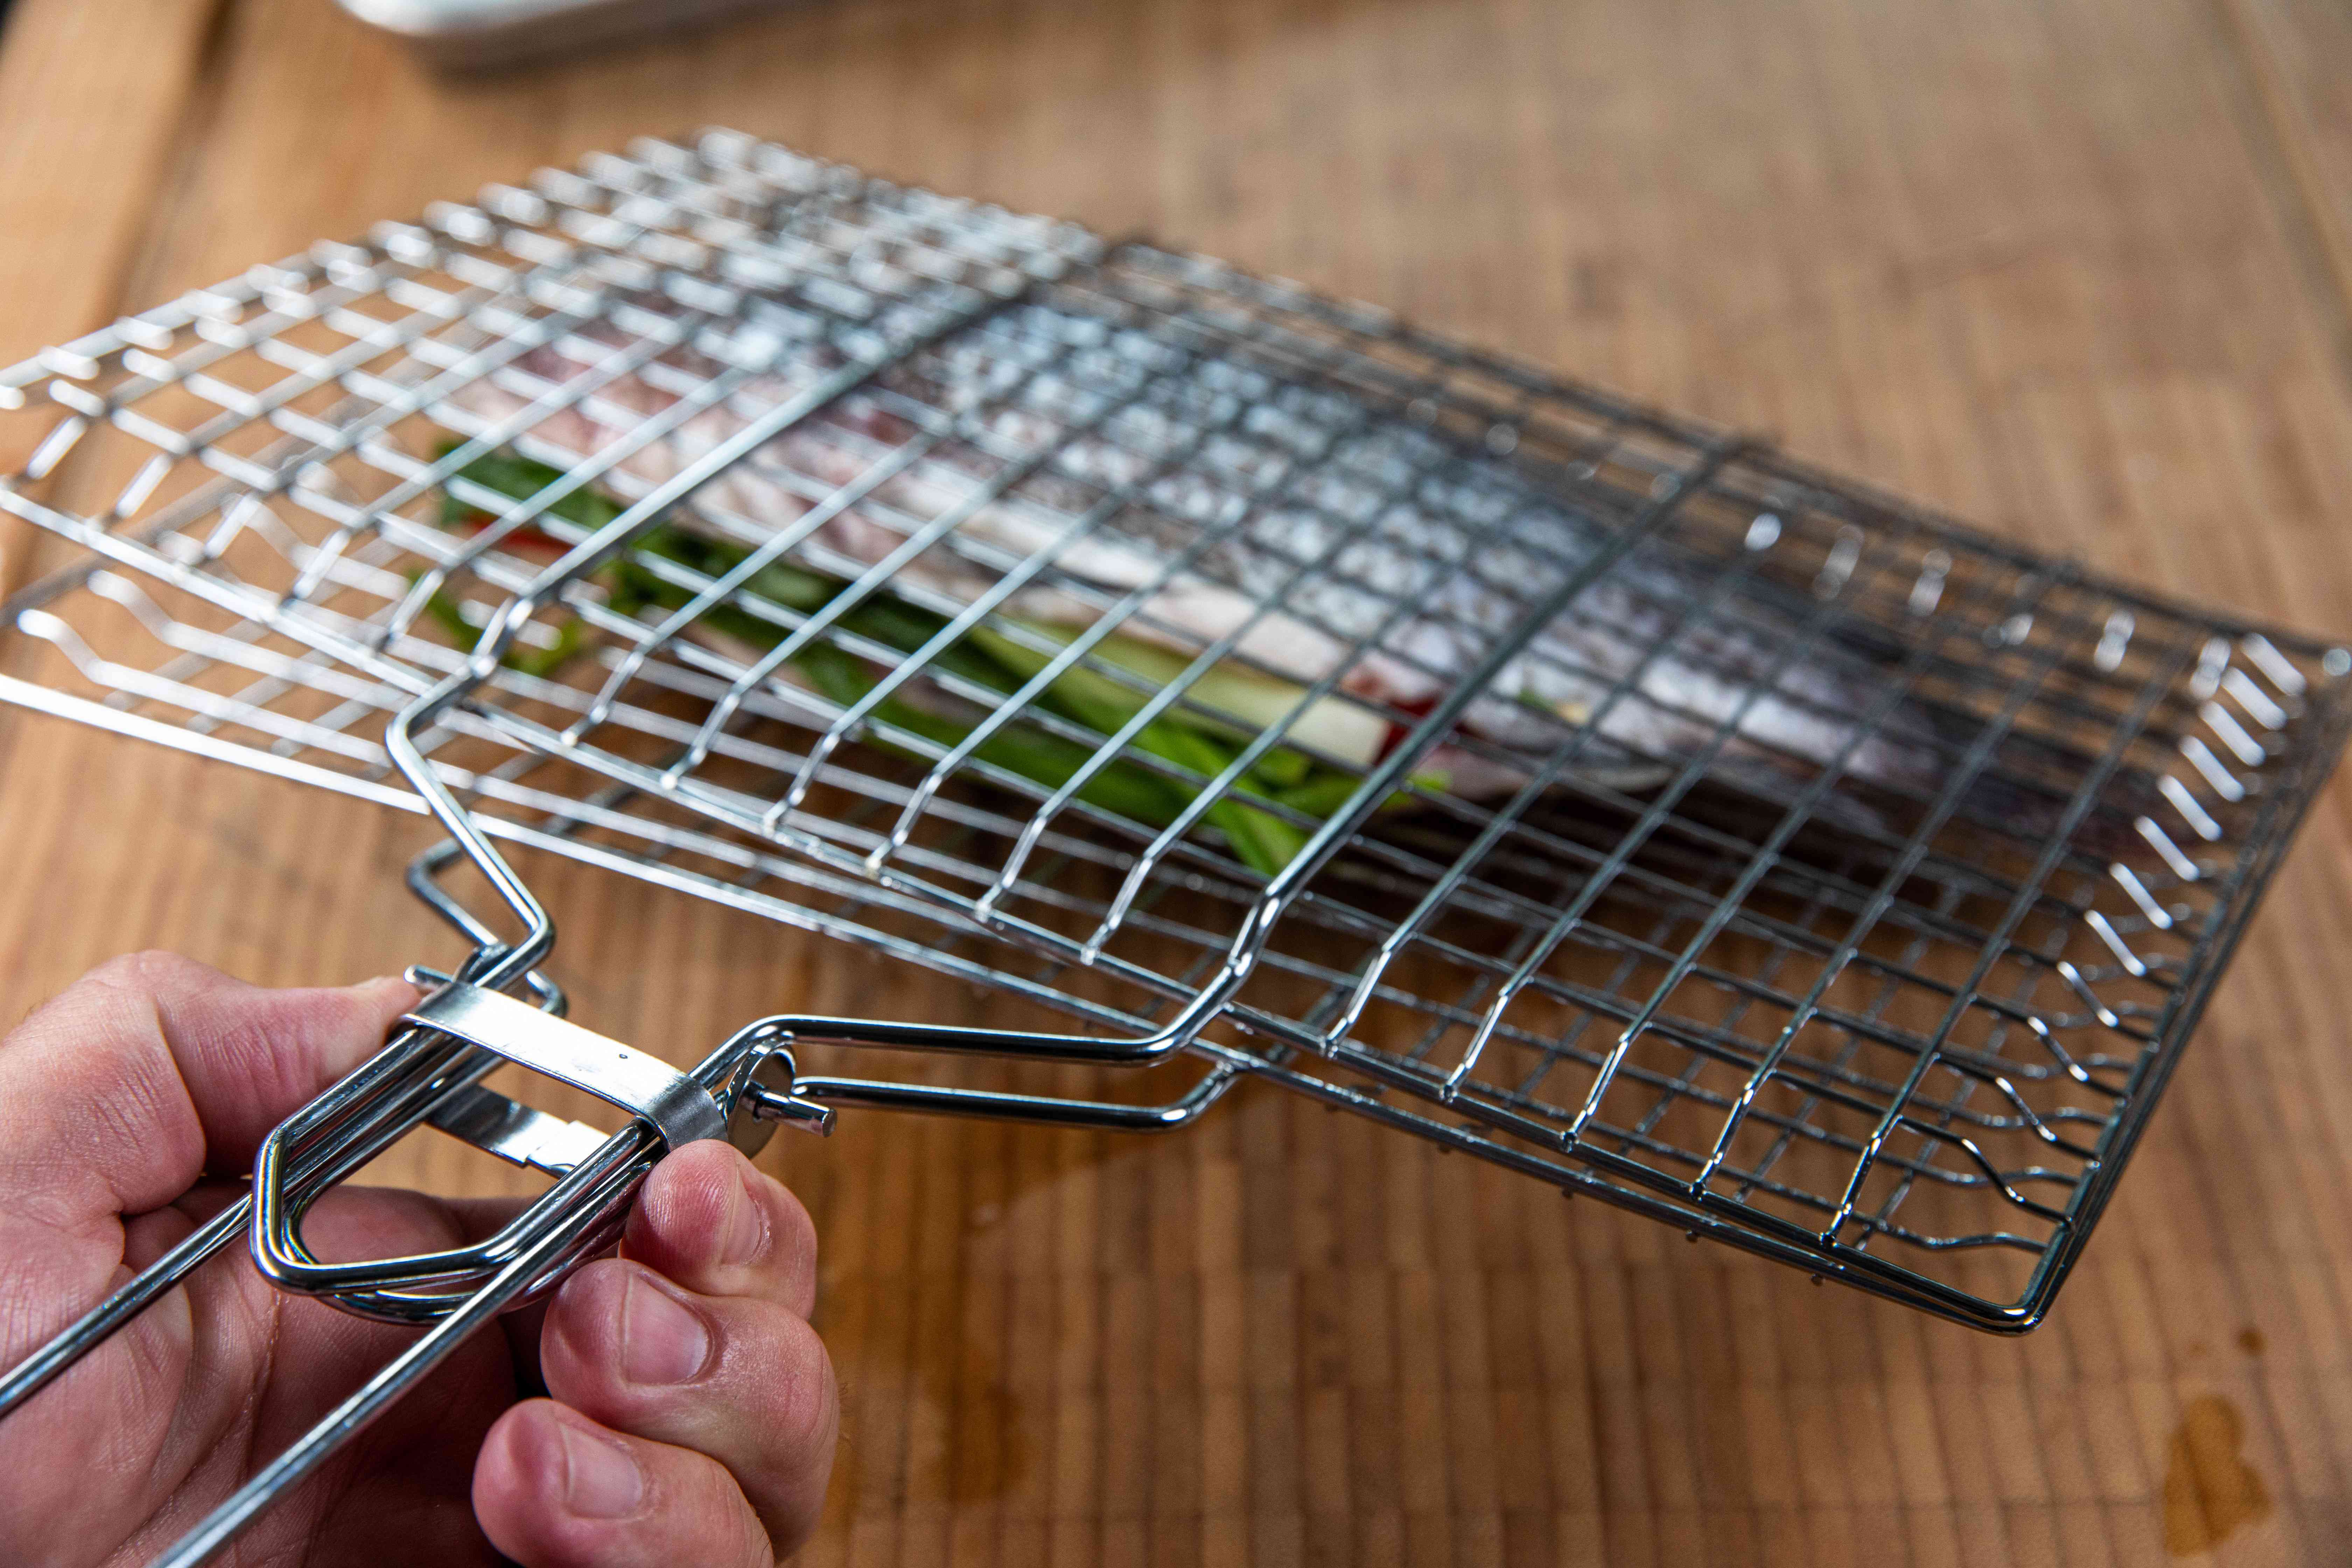 A grill cage with a whole tilapia inside.